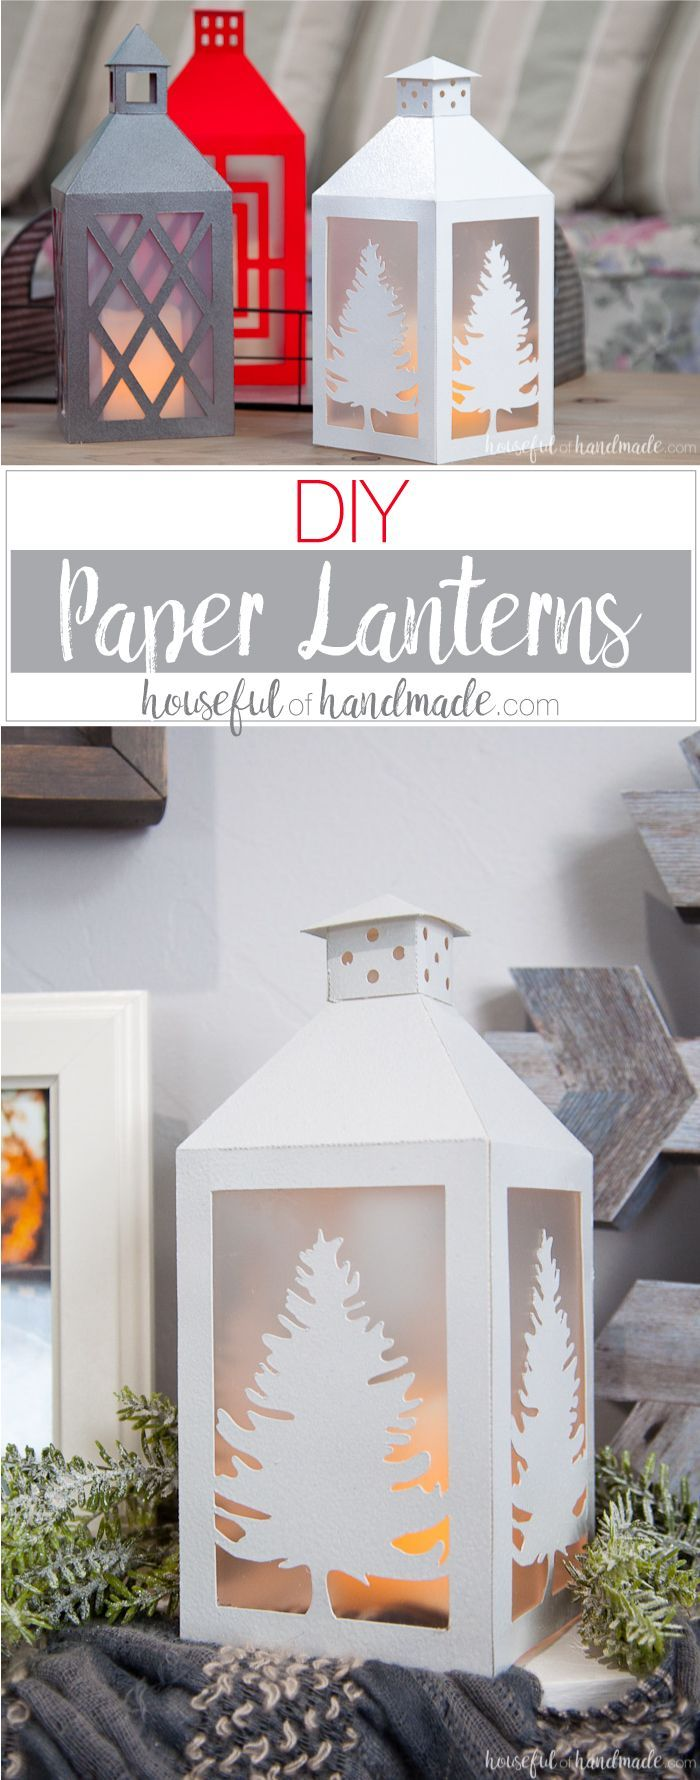 Decorate your farmhouse on a budget with these popular DIY paper lanterns. They are easy to make and you can make them match any home decor.    How to Make DIY Paper Lanterns Decor   Paper crafts   Silhouette Cameo craft   DIY Home Decor   Budget Home Dec